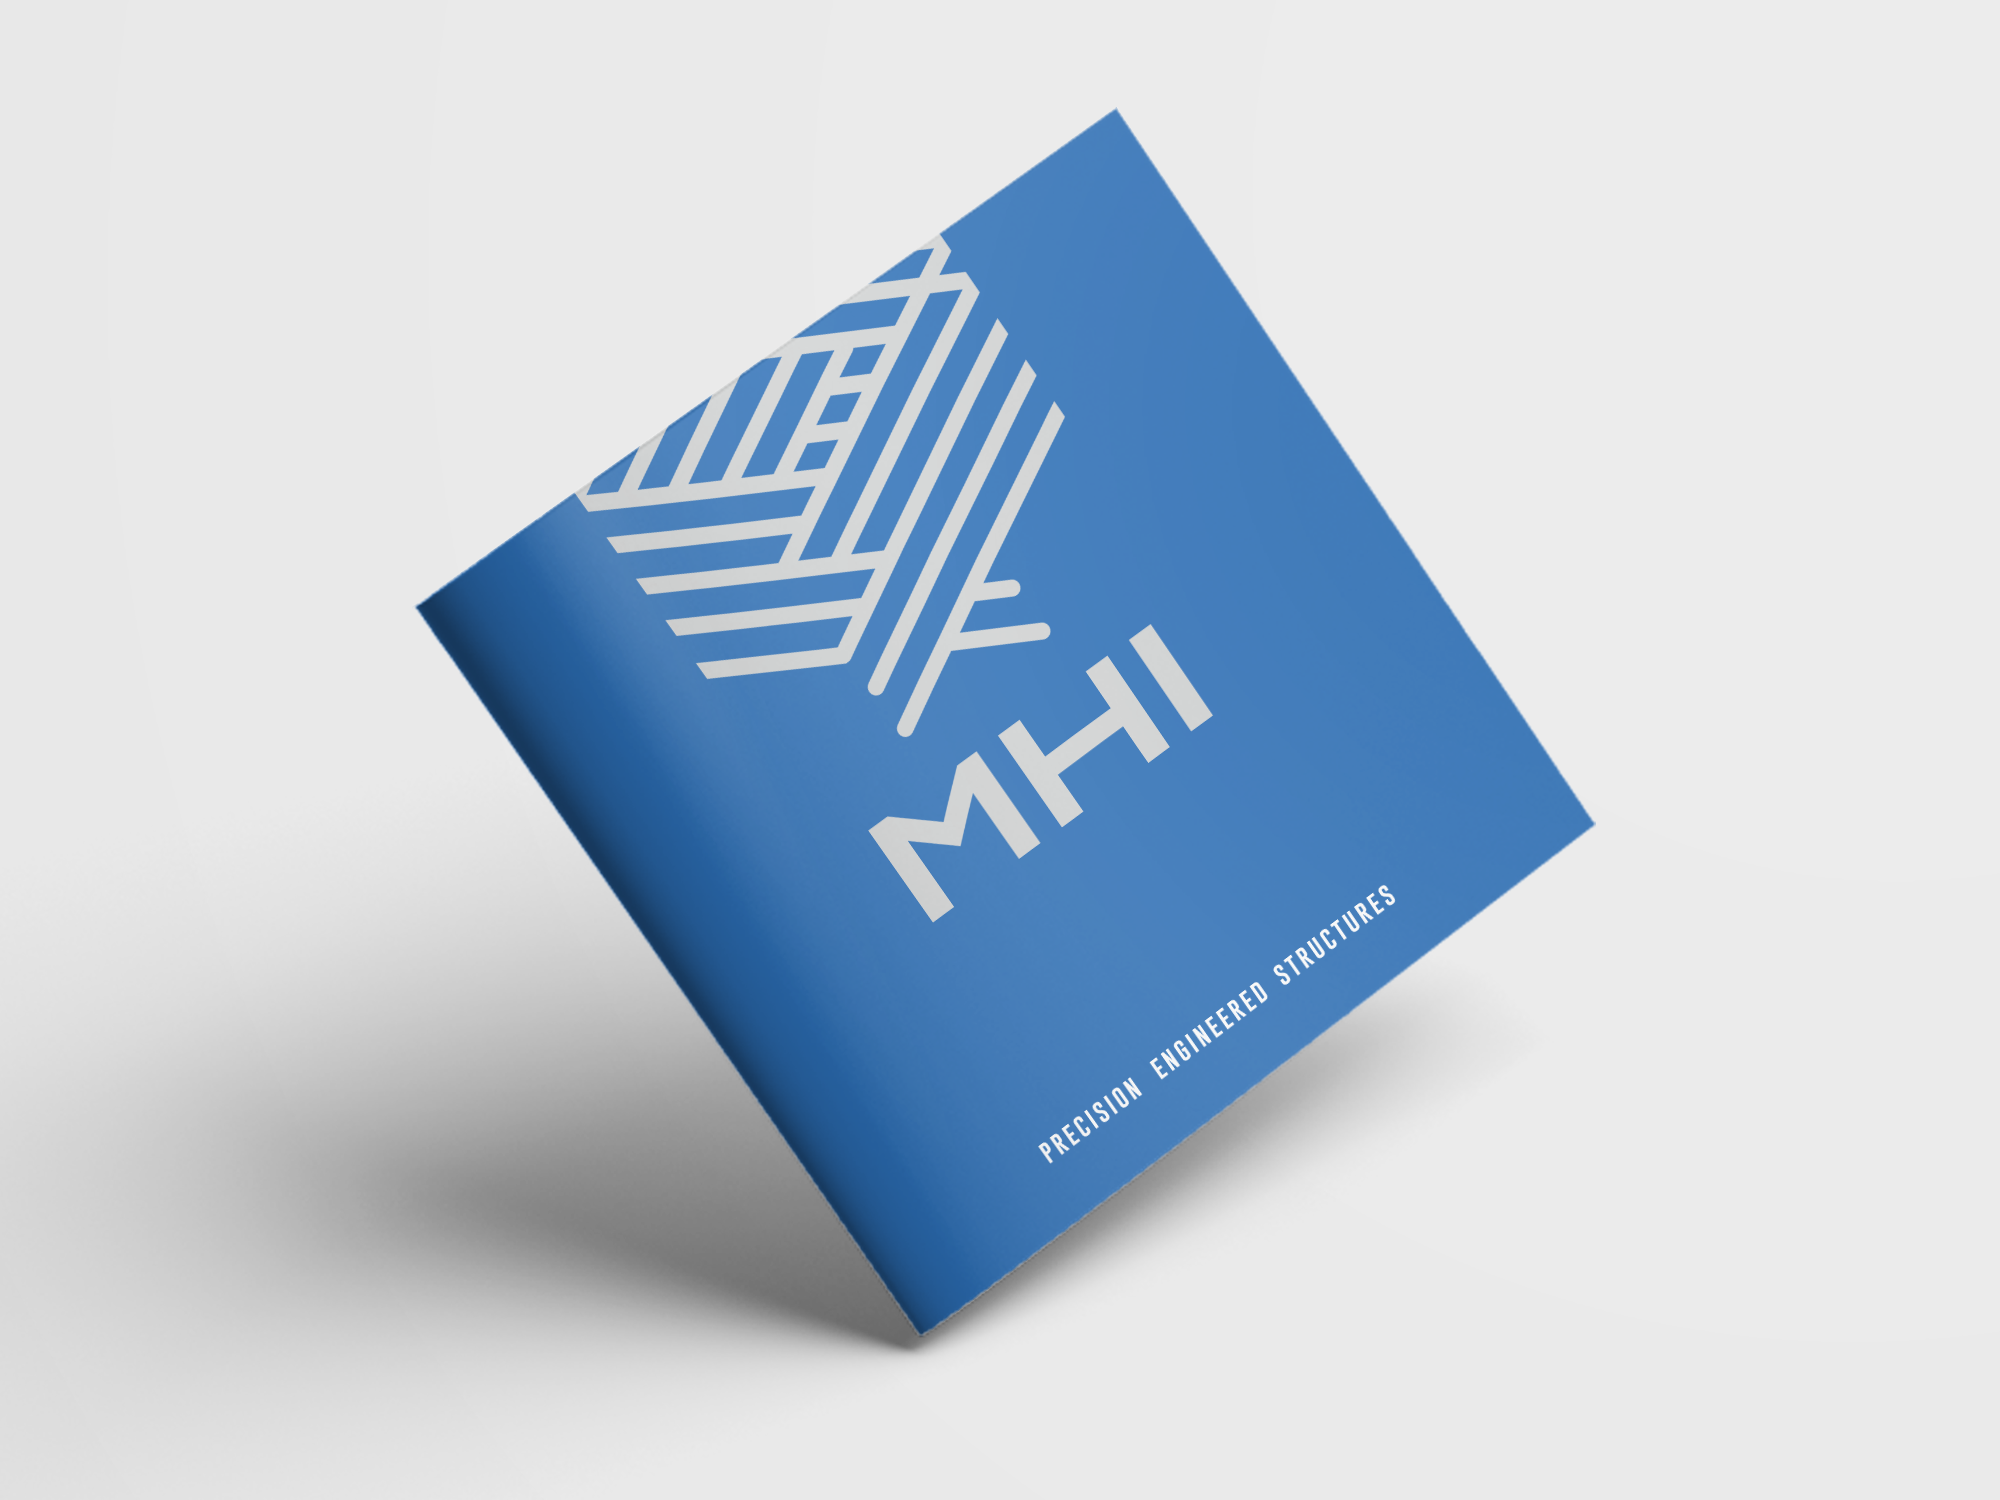 Cover image: MHI